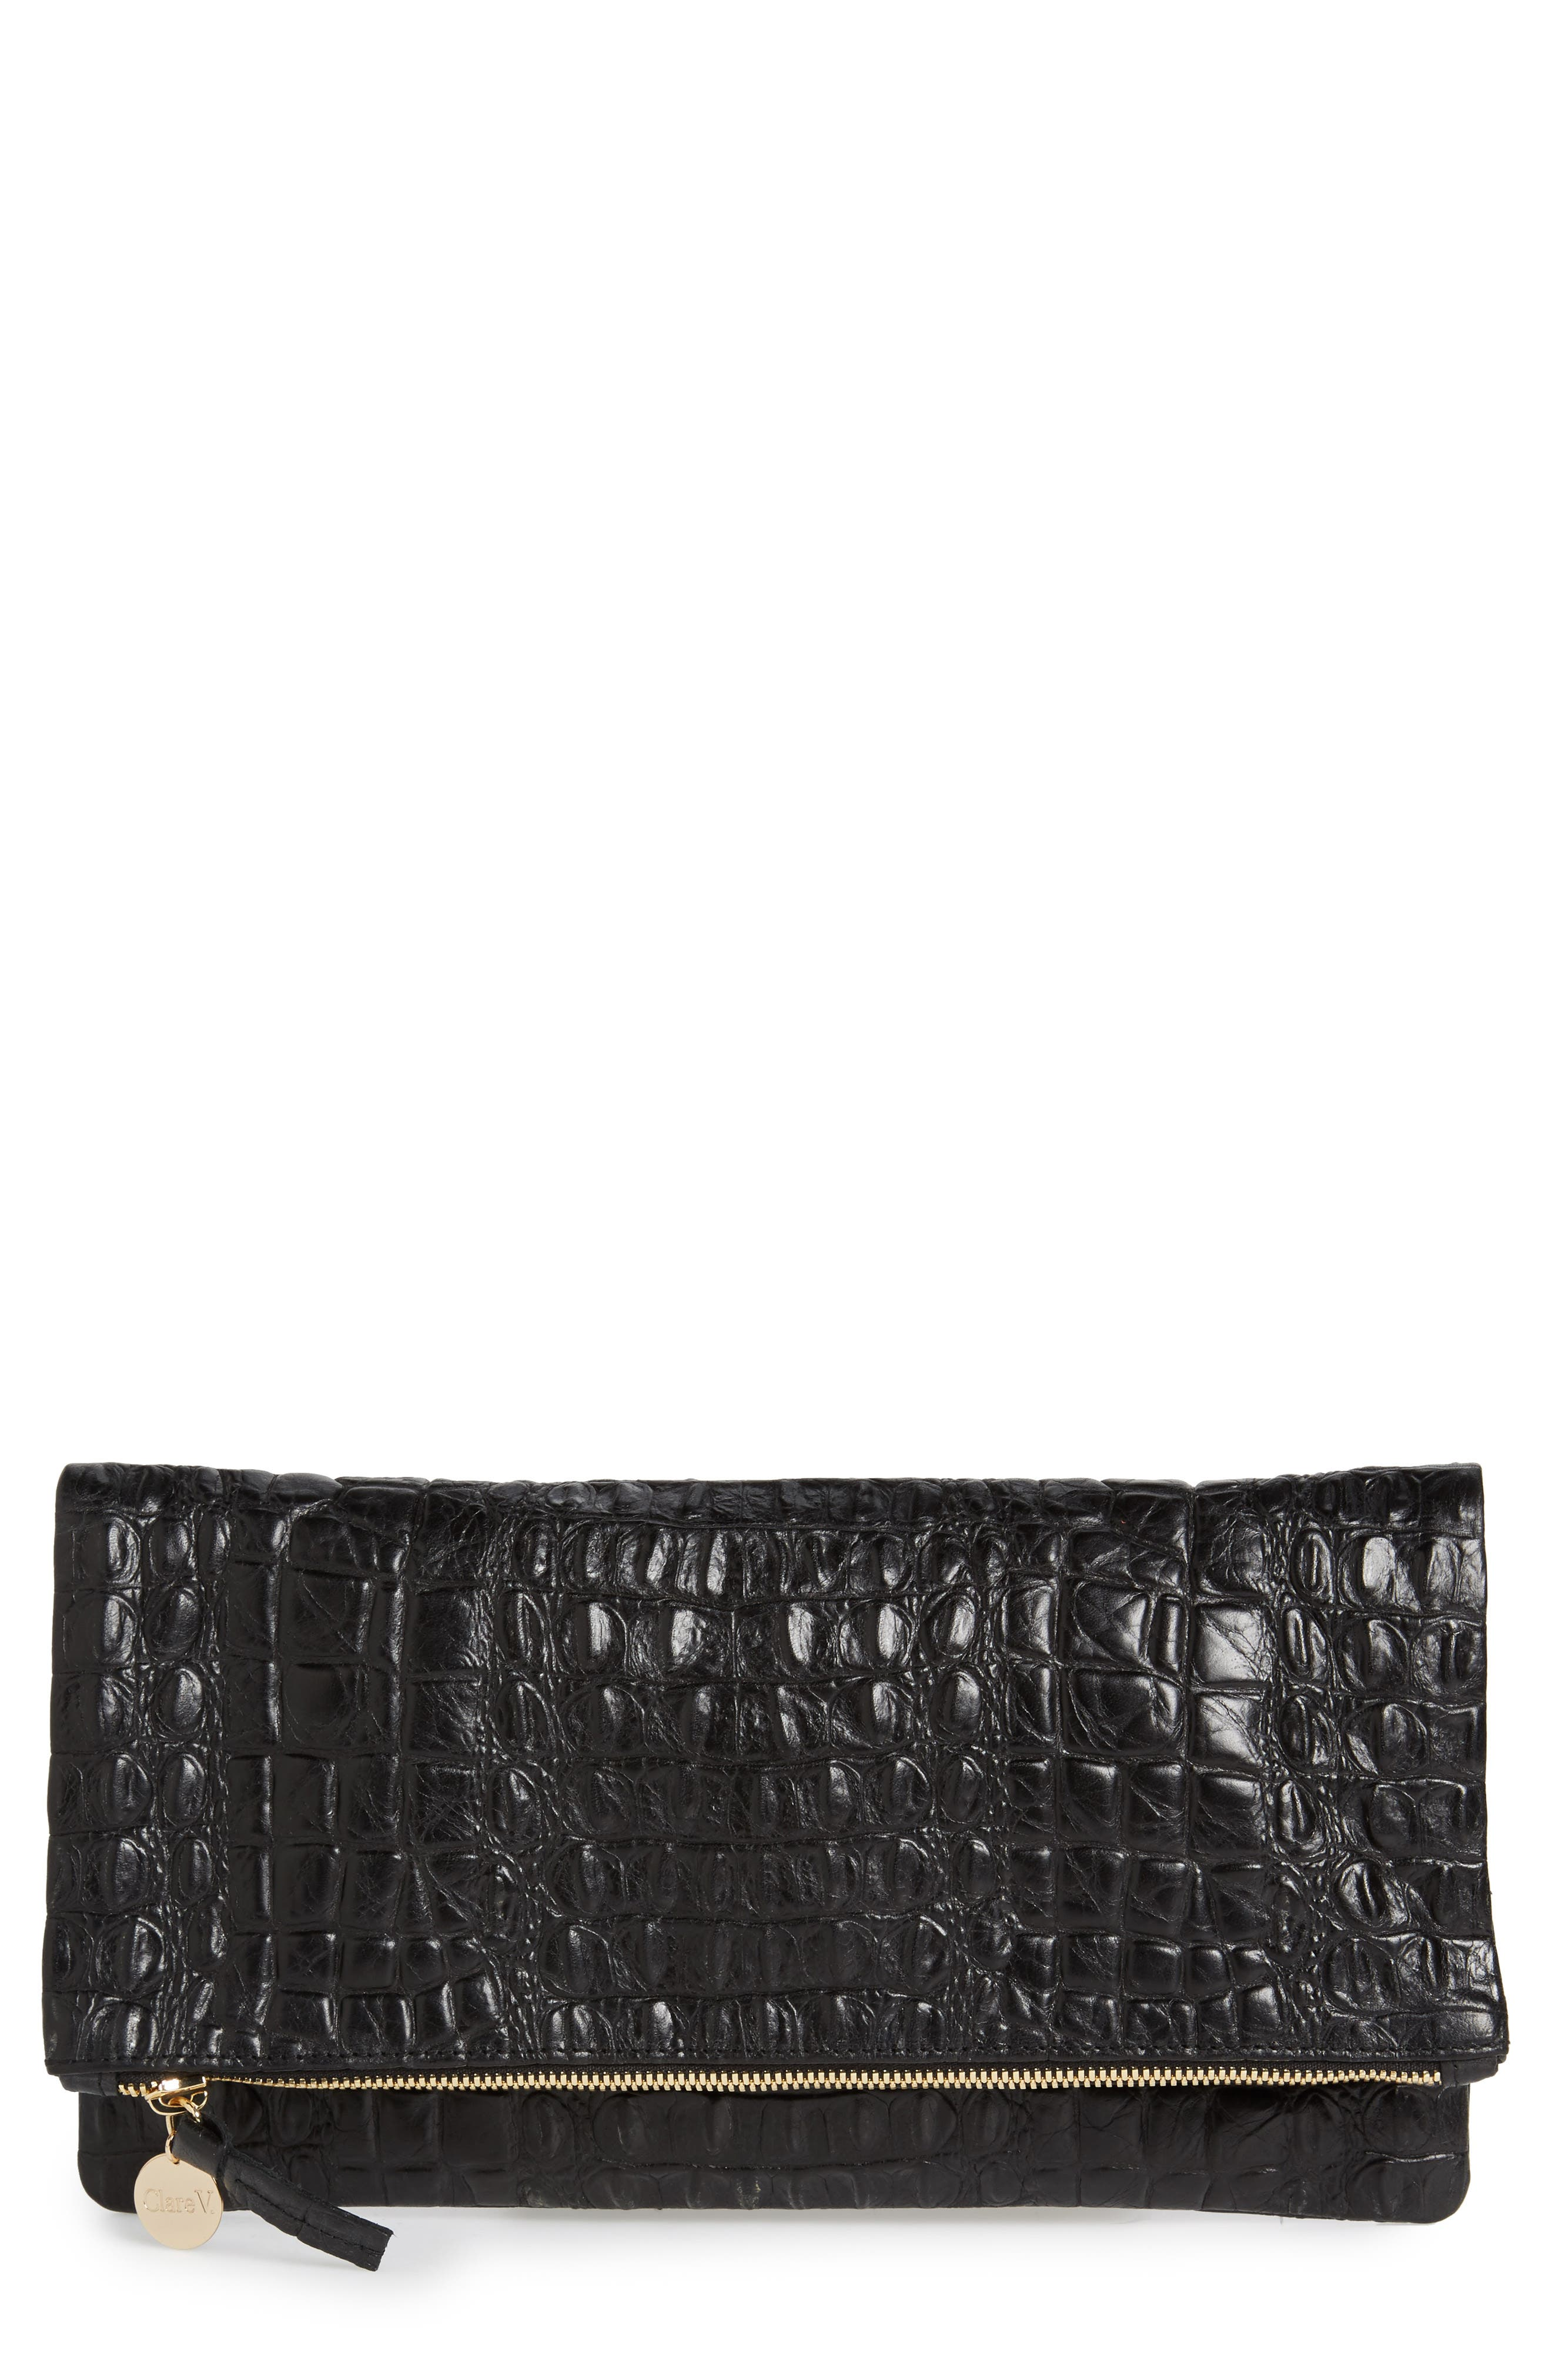 Croc Embossed Leather Foldover Clutch,                         Main,                         color, 001